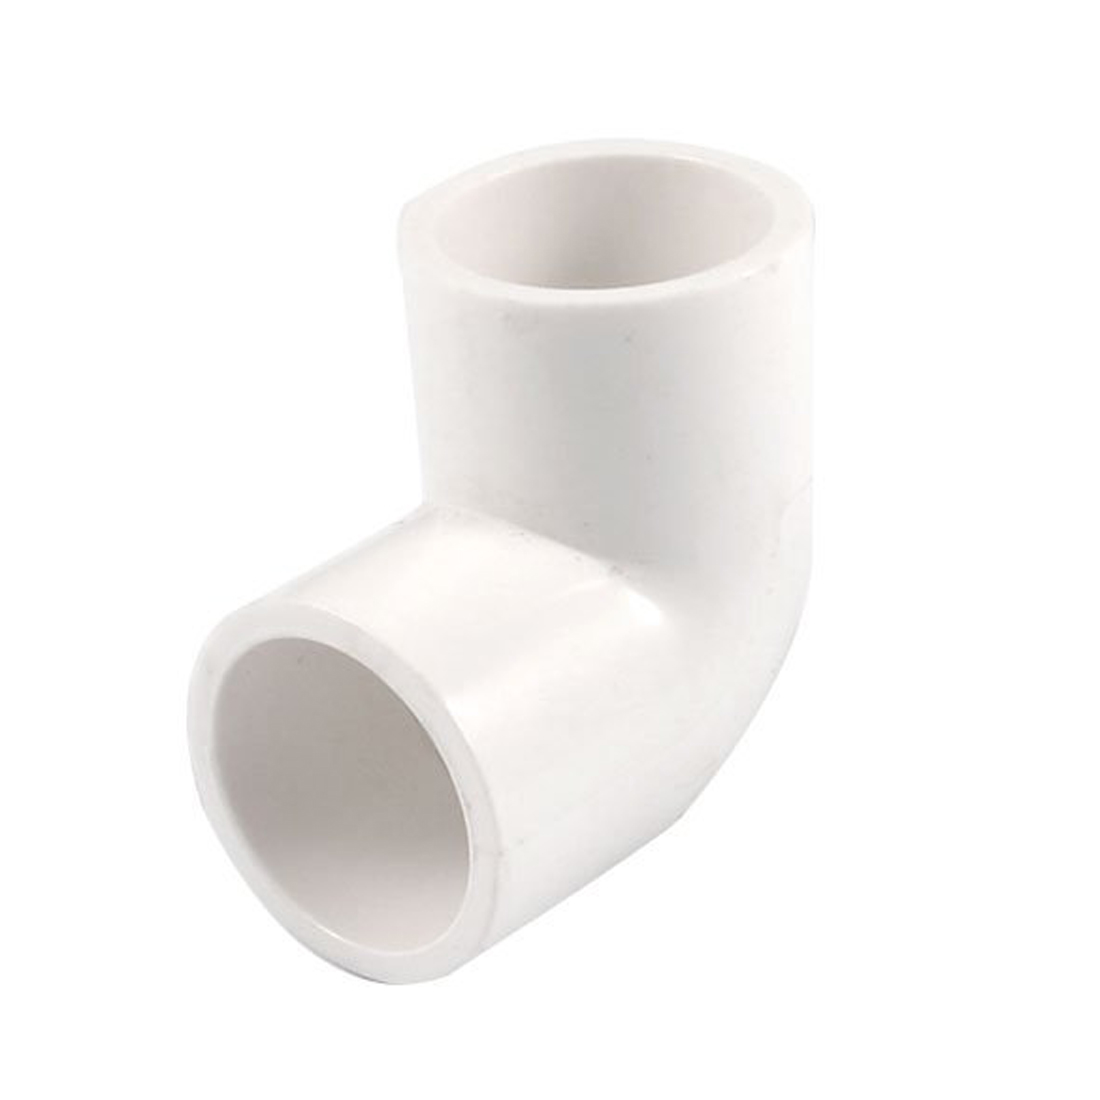 5 pieces 20mm dia 90 angle degree elbow pvc pipe adapter white ws. Black Bedroom Furniture Sets. Home Design Ideas